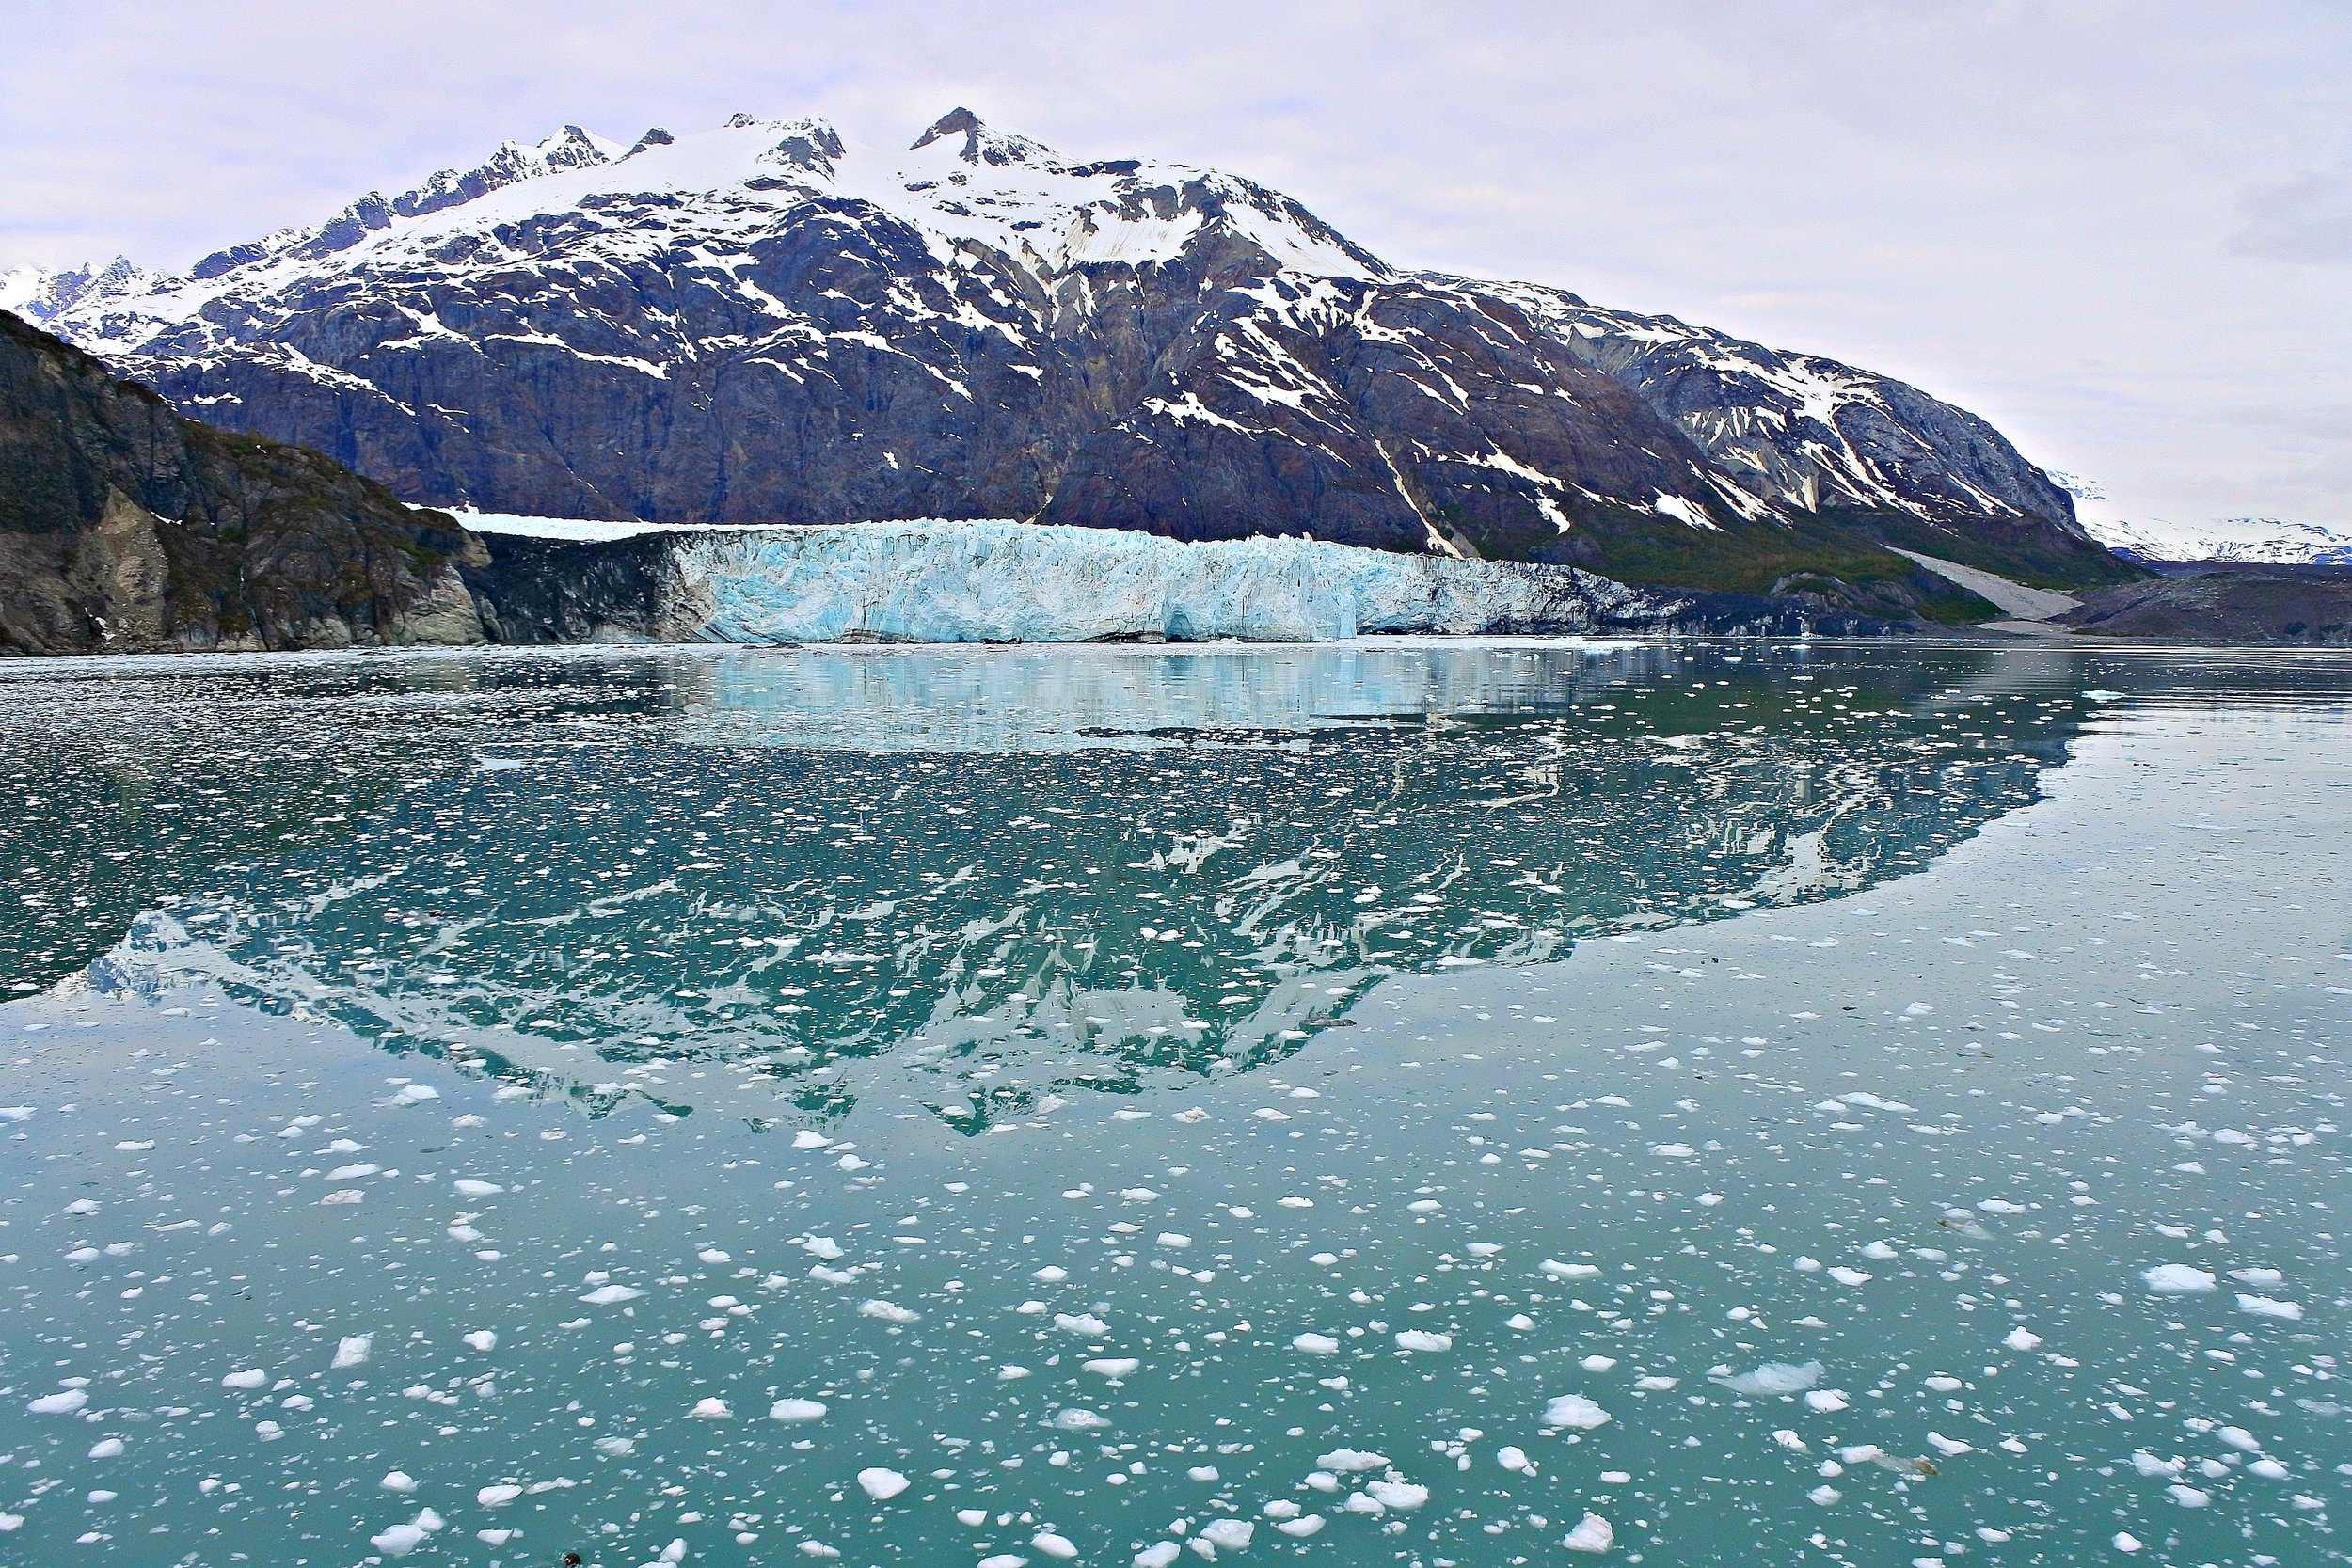 """Glacier Bay, Alaska. The block of blue ice beneath the mountain is a glacier. The white fluff on the water are pieces of ice that broke away from the bigger block during a process called """"caving"""""""